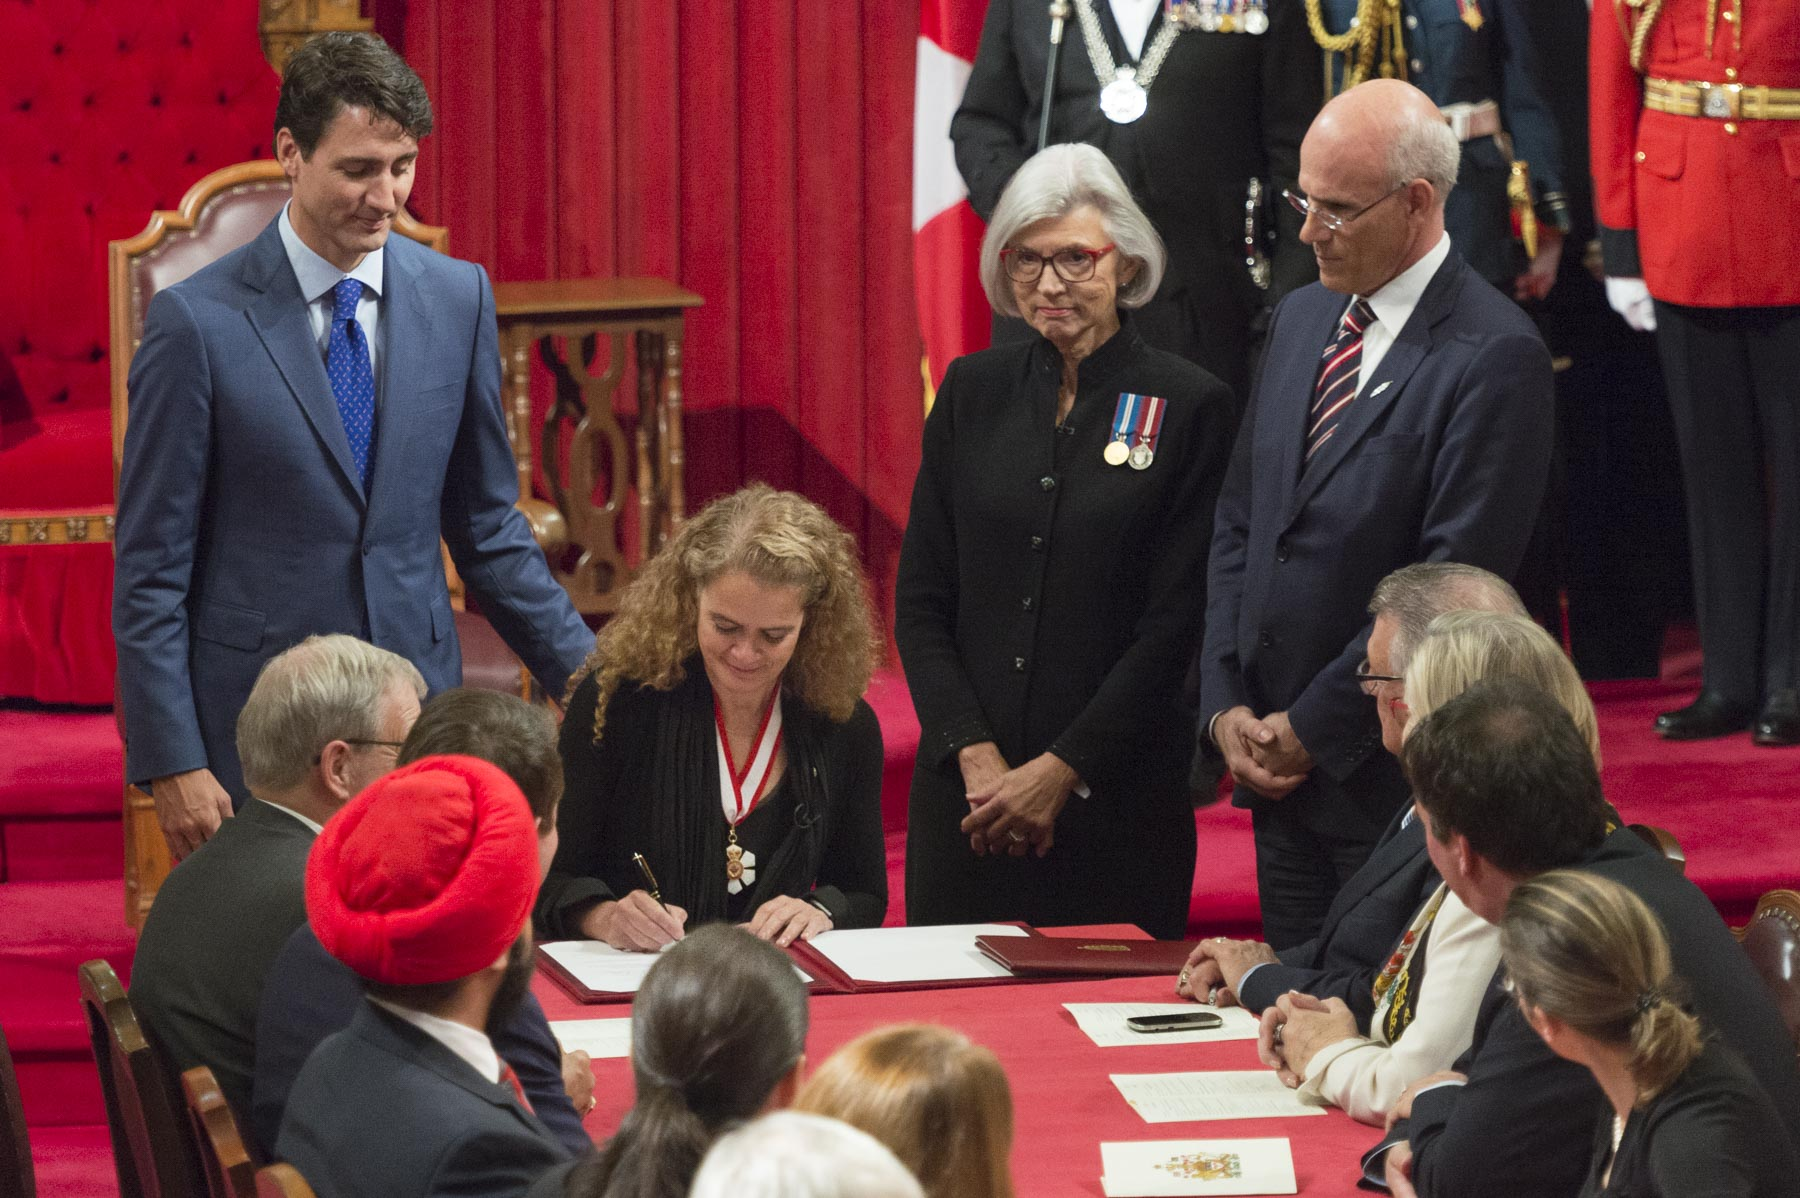 The Governor General designate Ms. Julie Payette signed the Oath Register.